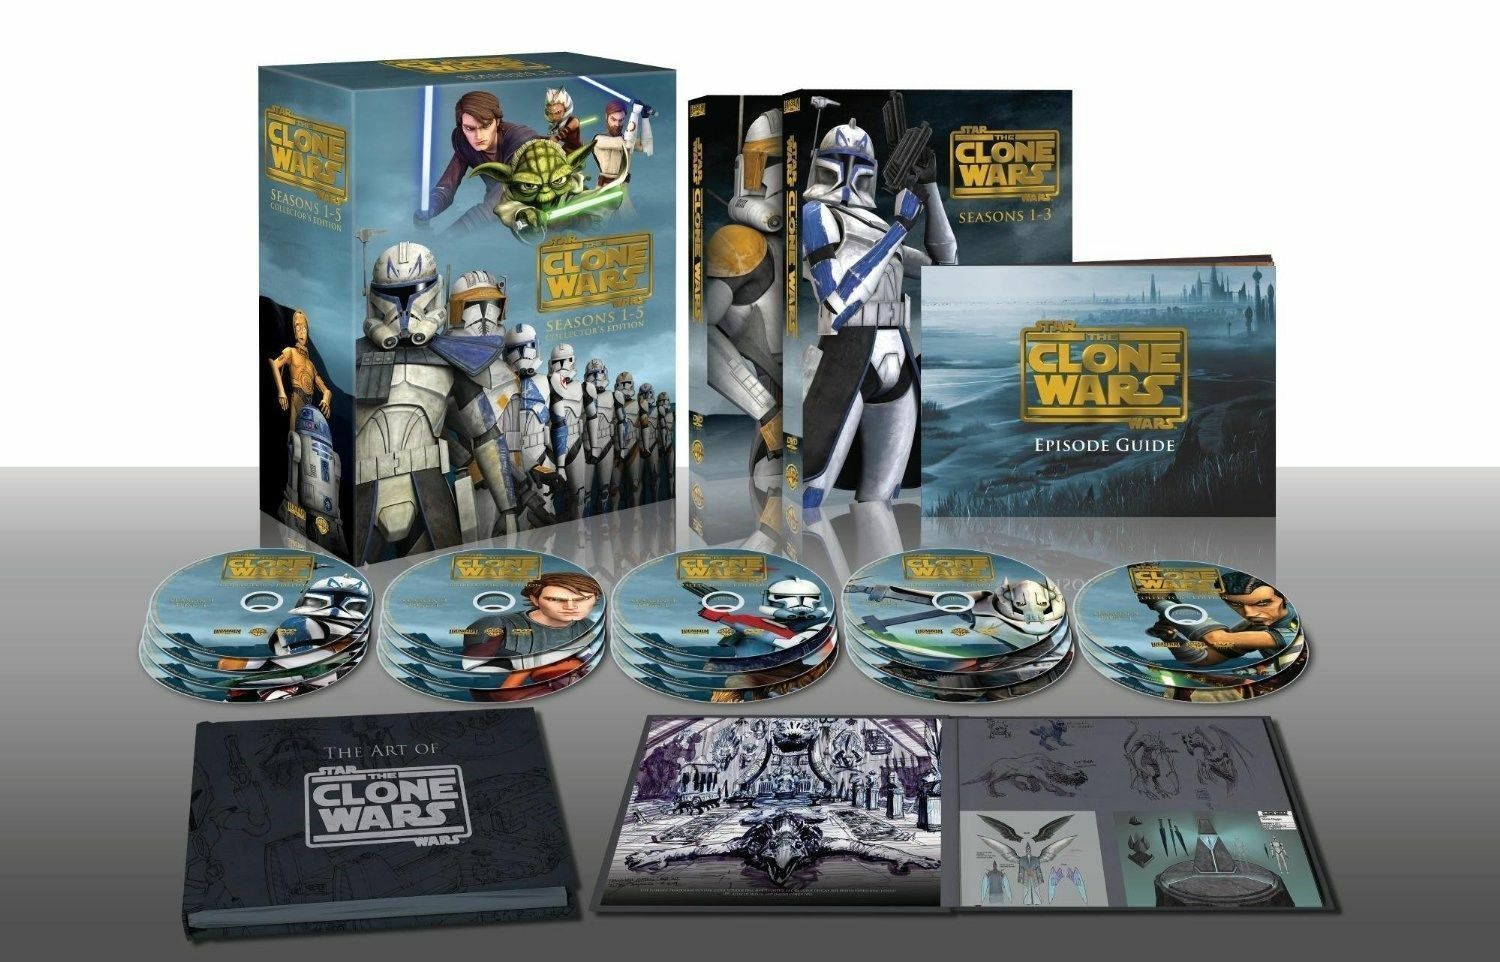 Star Wars Clone Wars DVD Collector's Edition